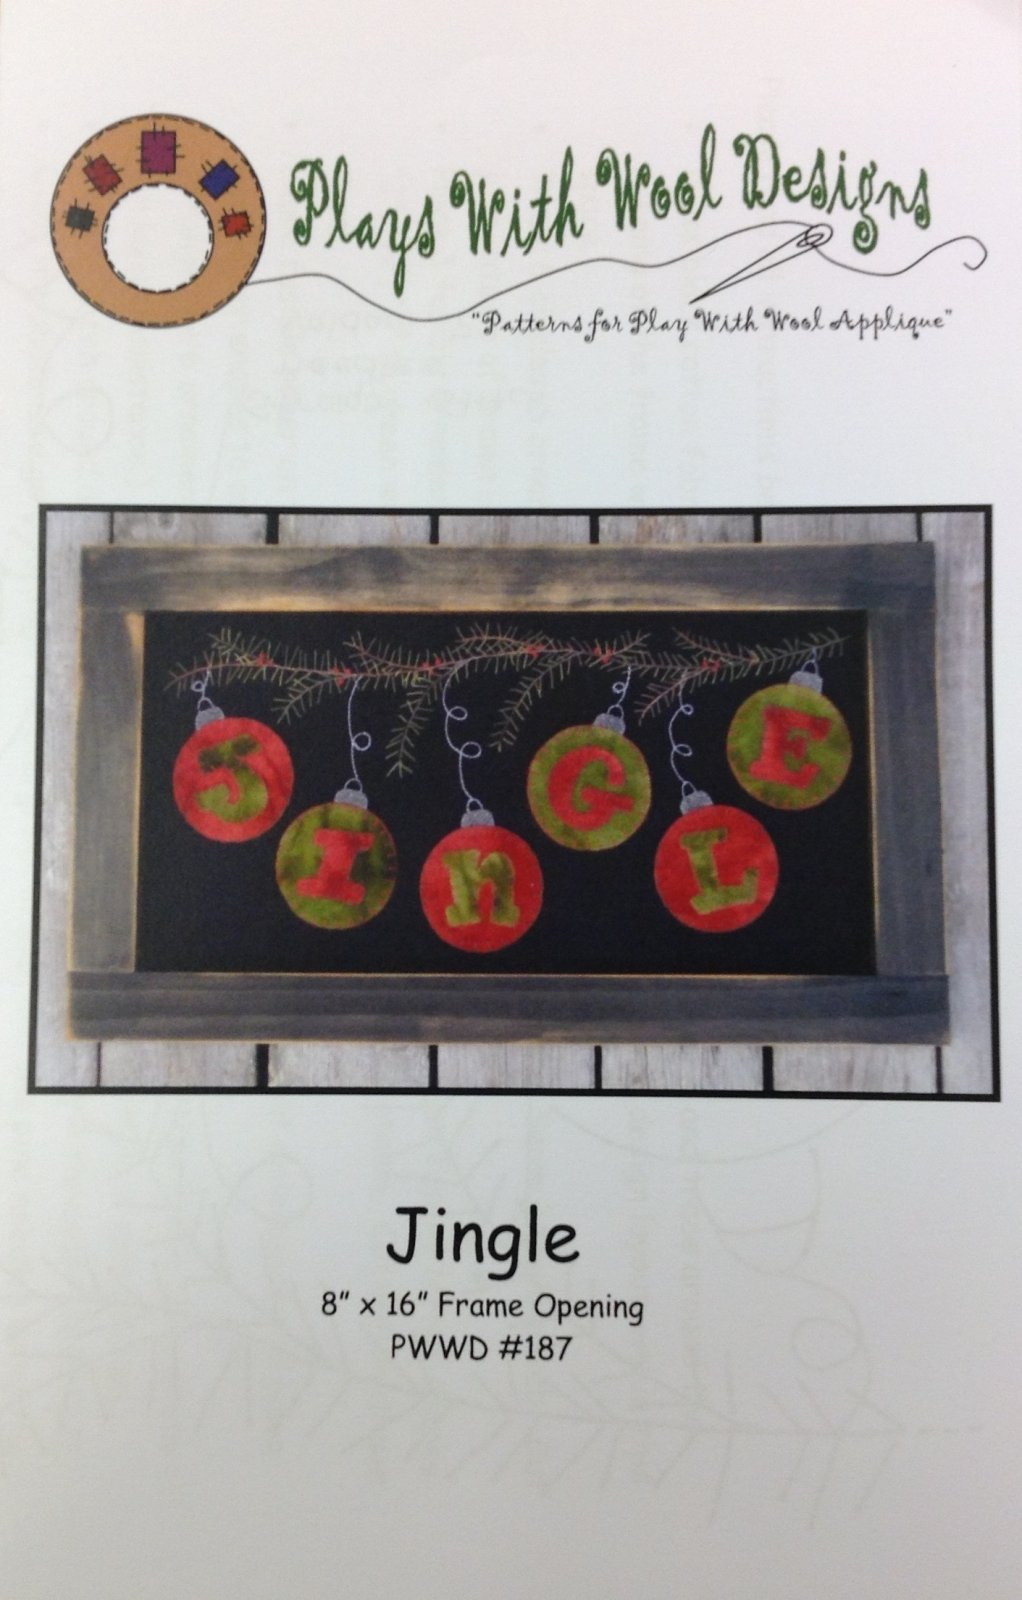 Jingle by Plays With Wool Designs